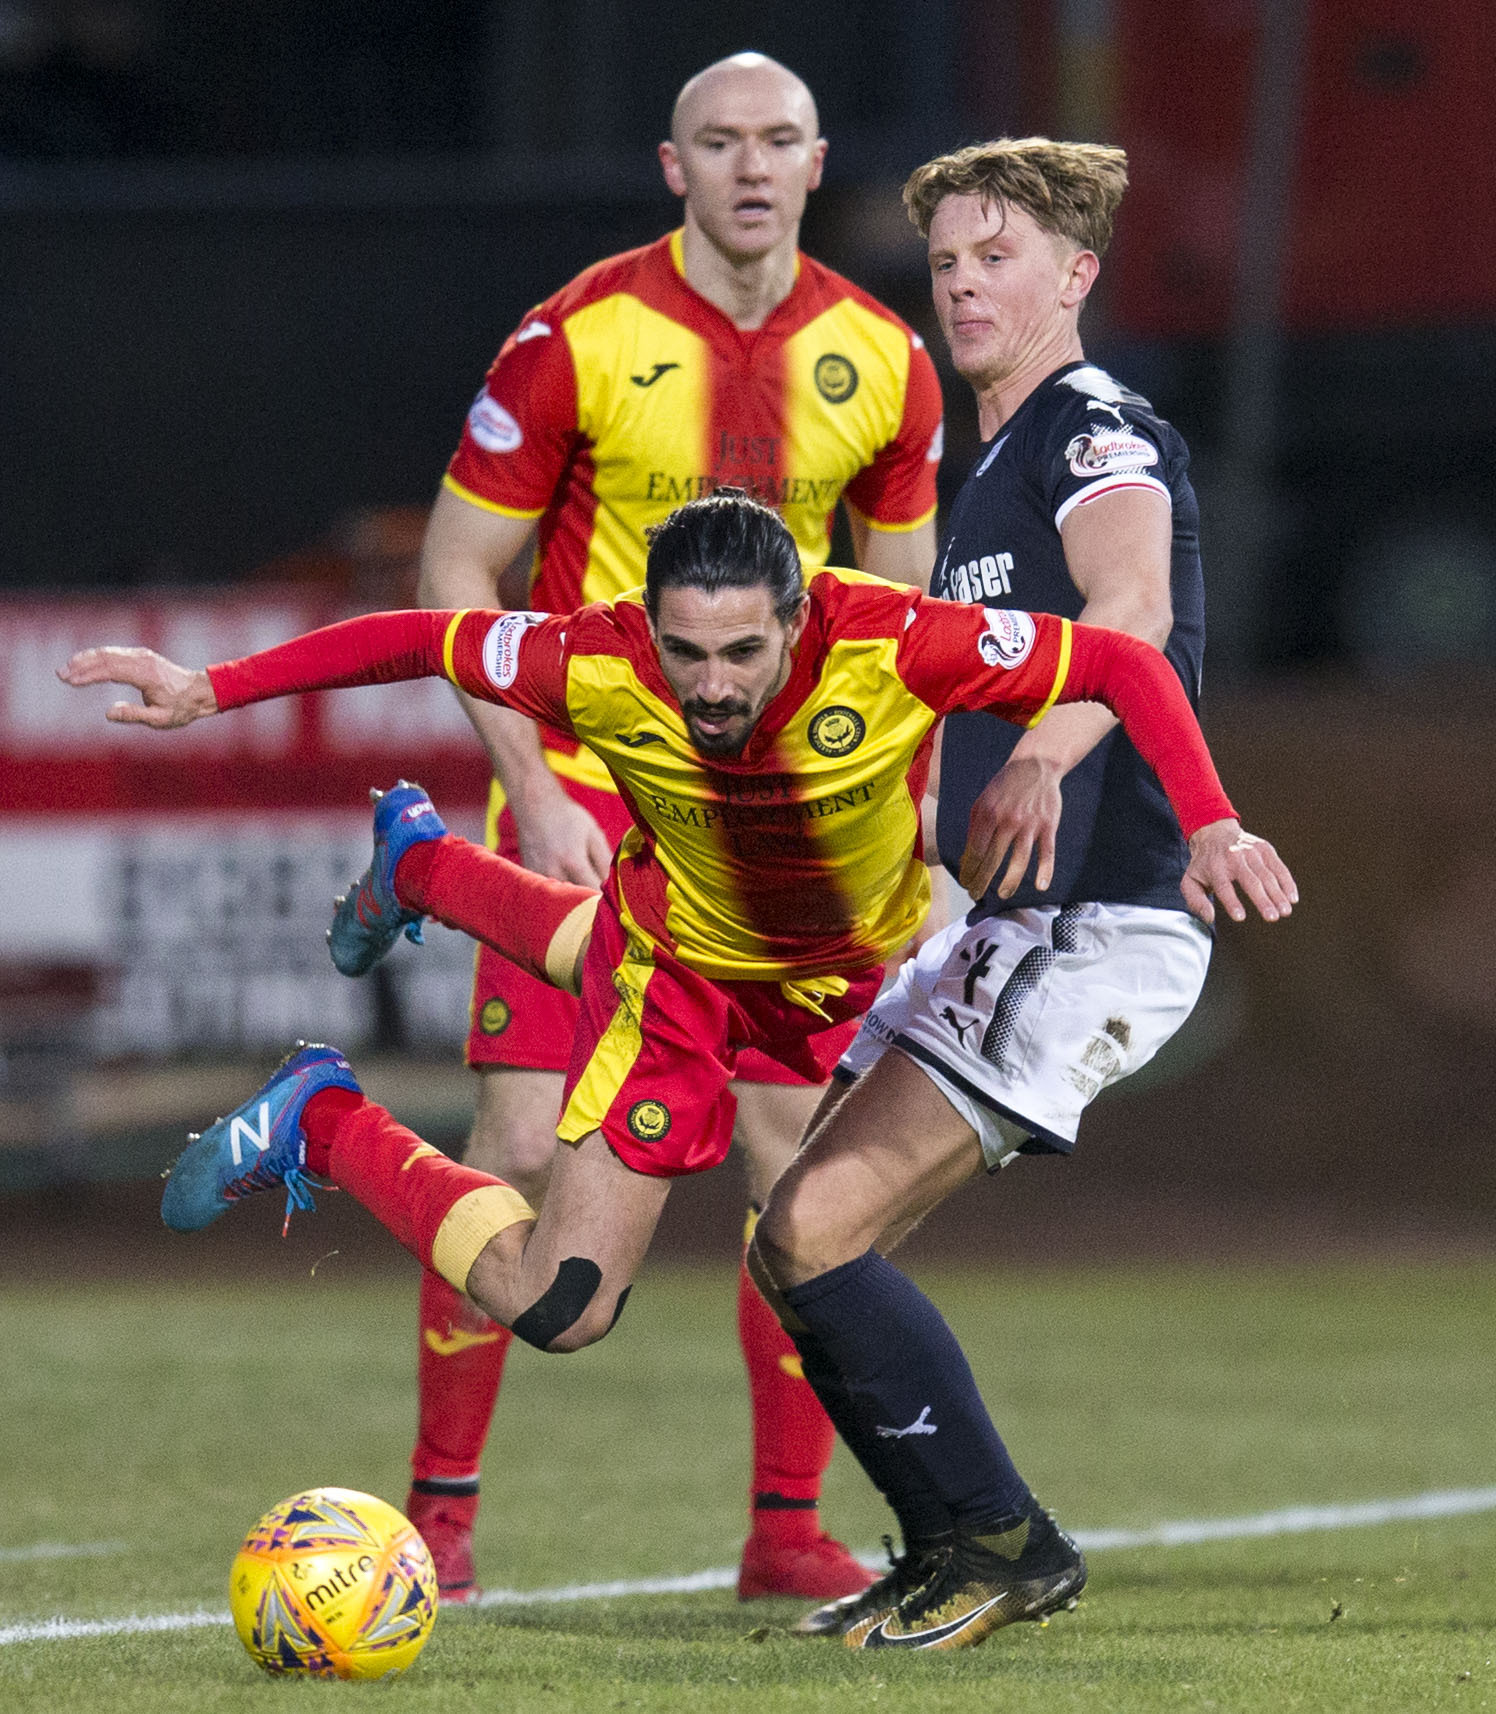 Down and out at Dens: Partick Thistle's Ryan Edwards takes a tumble in the loss at Dundee (Picture: SNS)